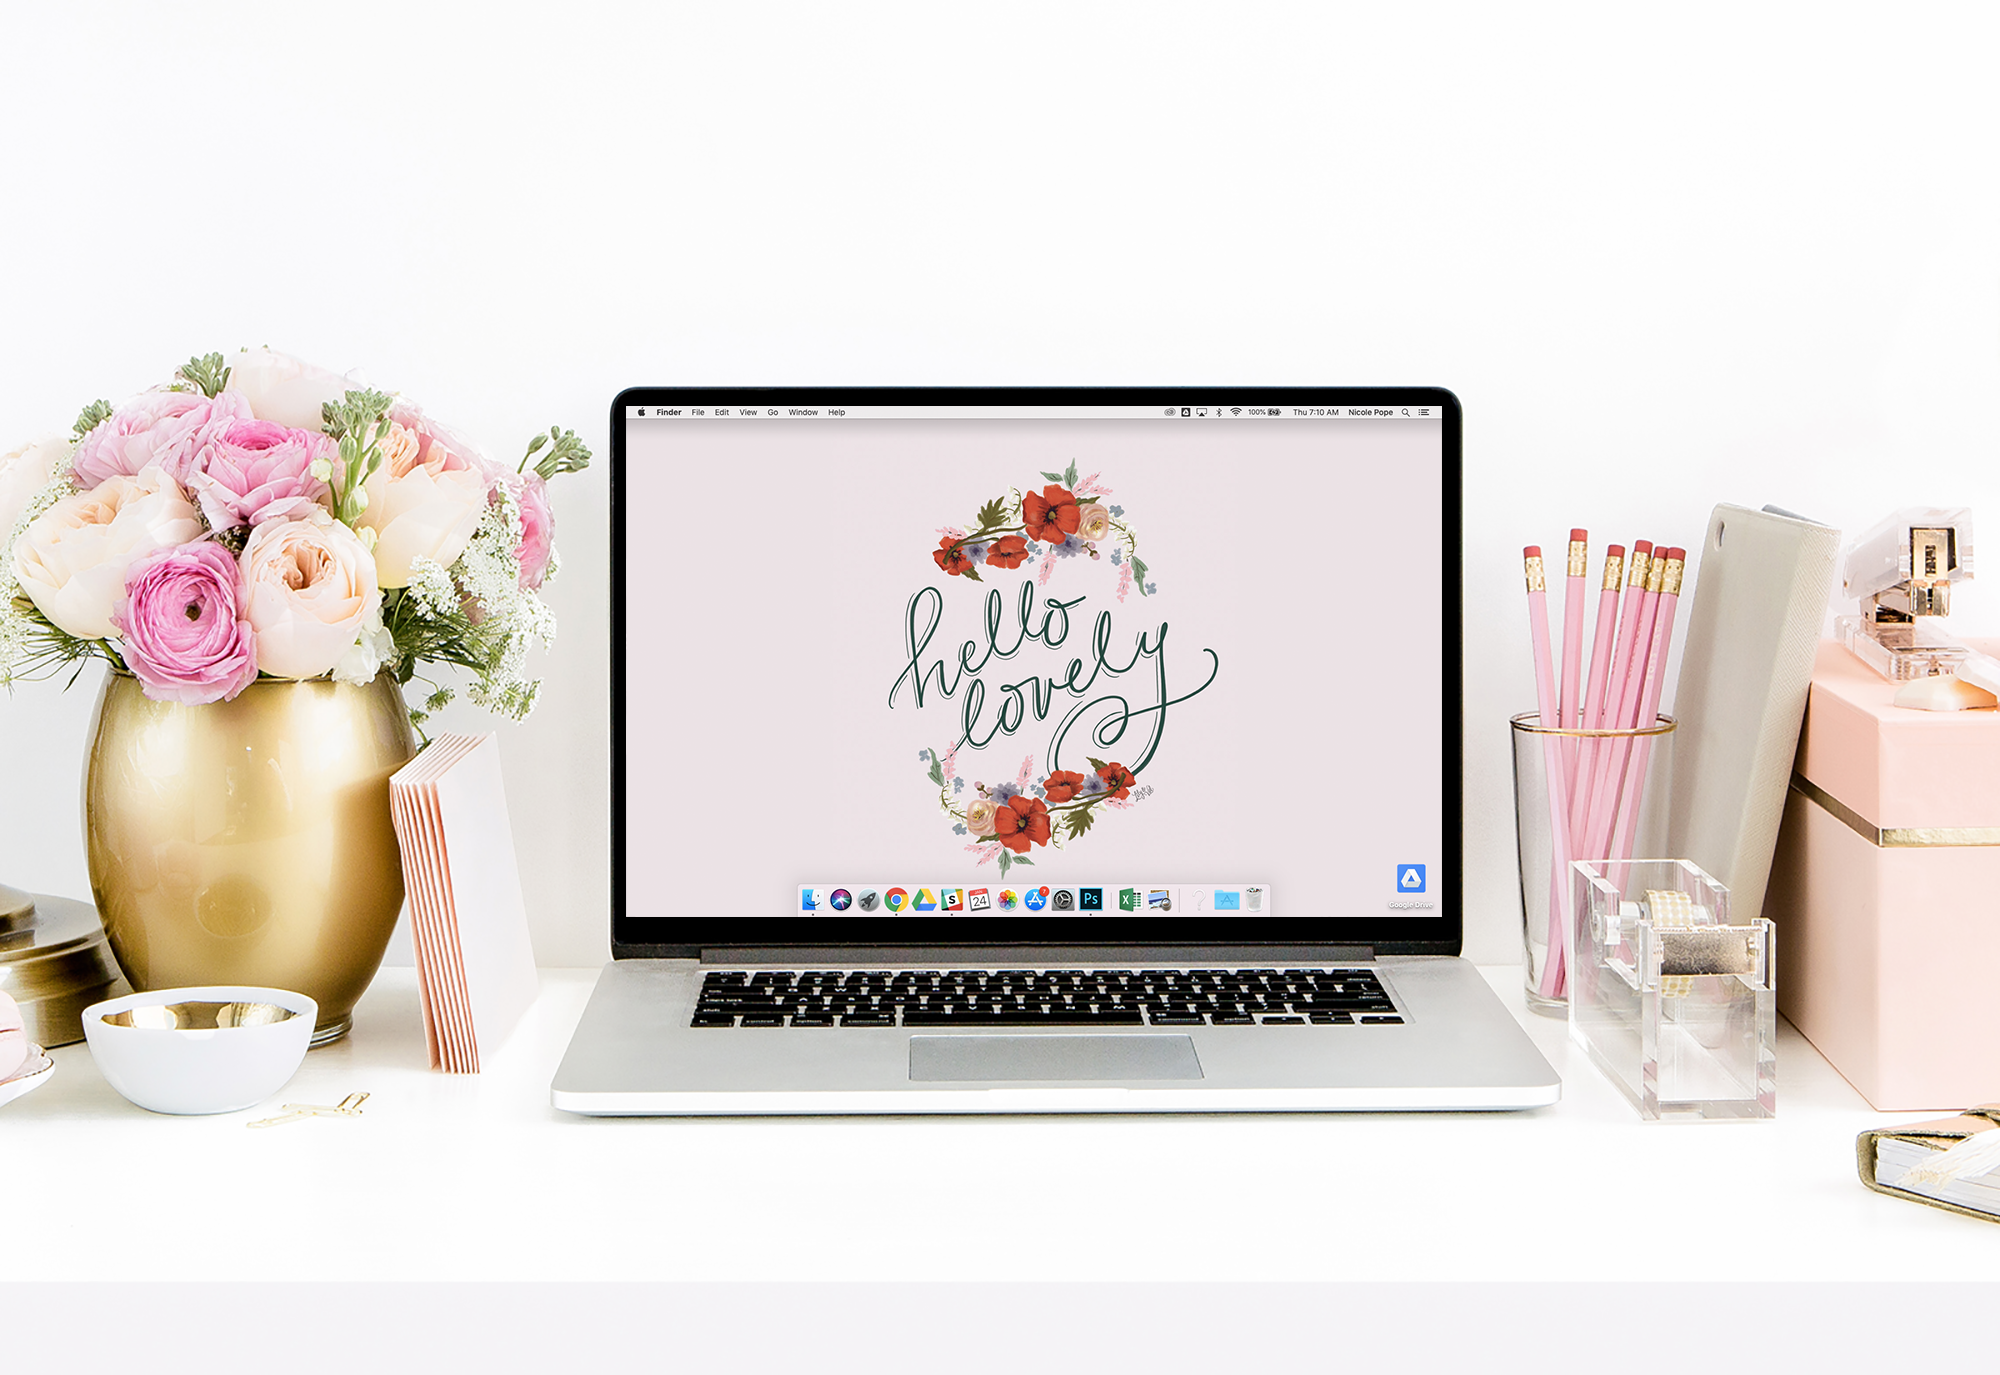 February Hello Lovely Free Desktop download